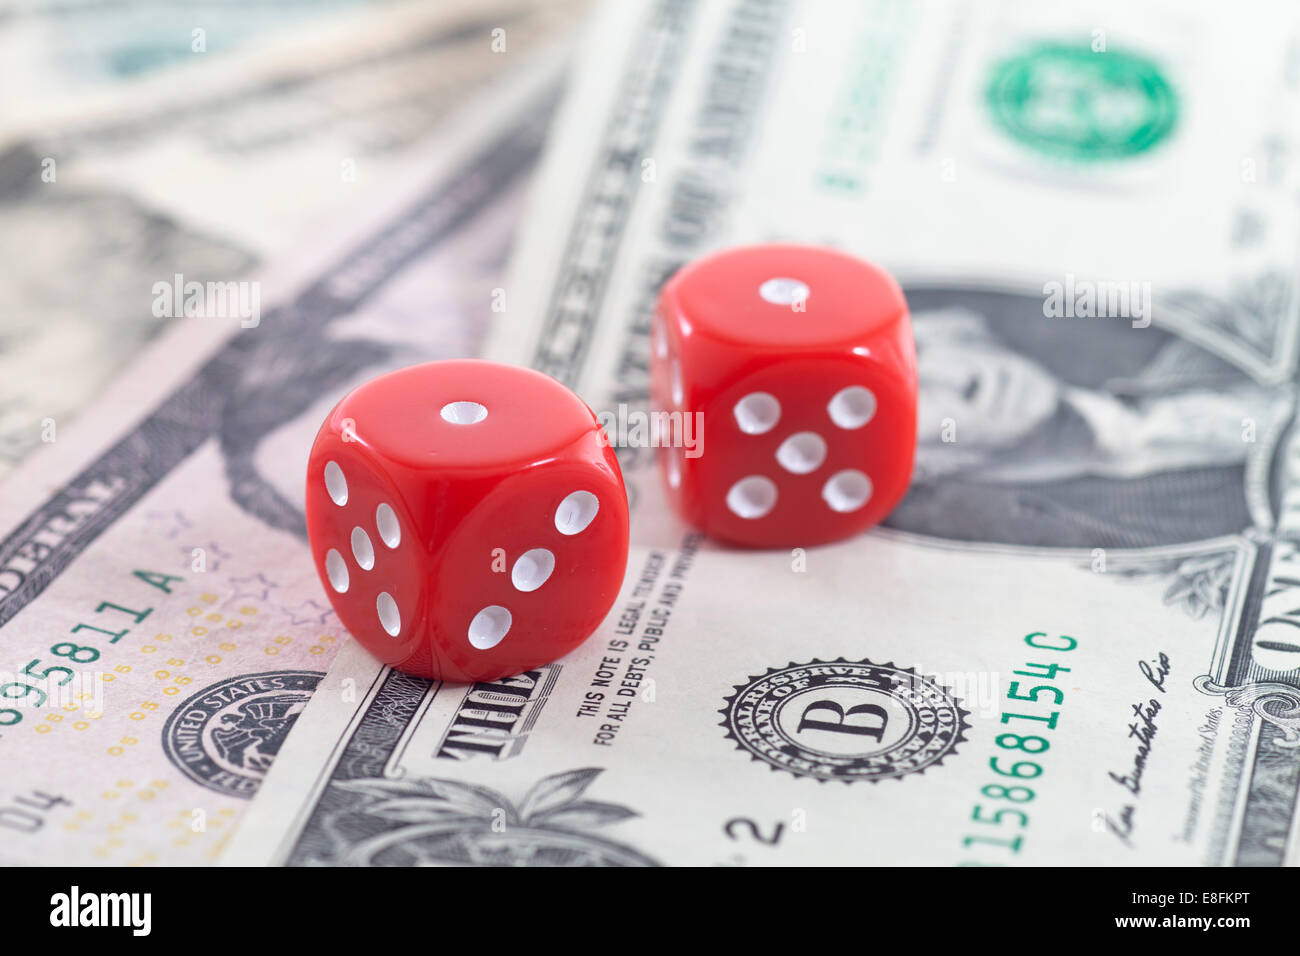 Pair Of Dice On Us Dollars - Stock Image